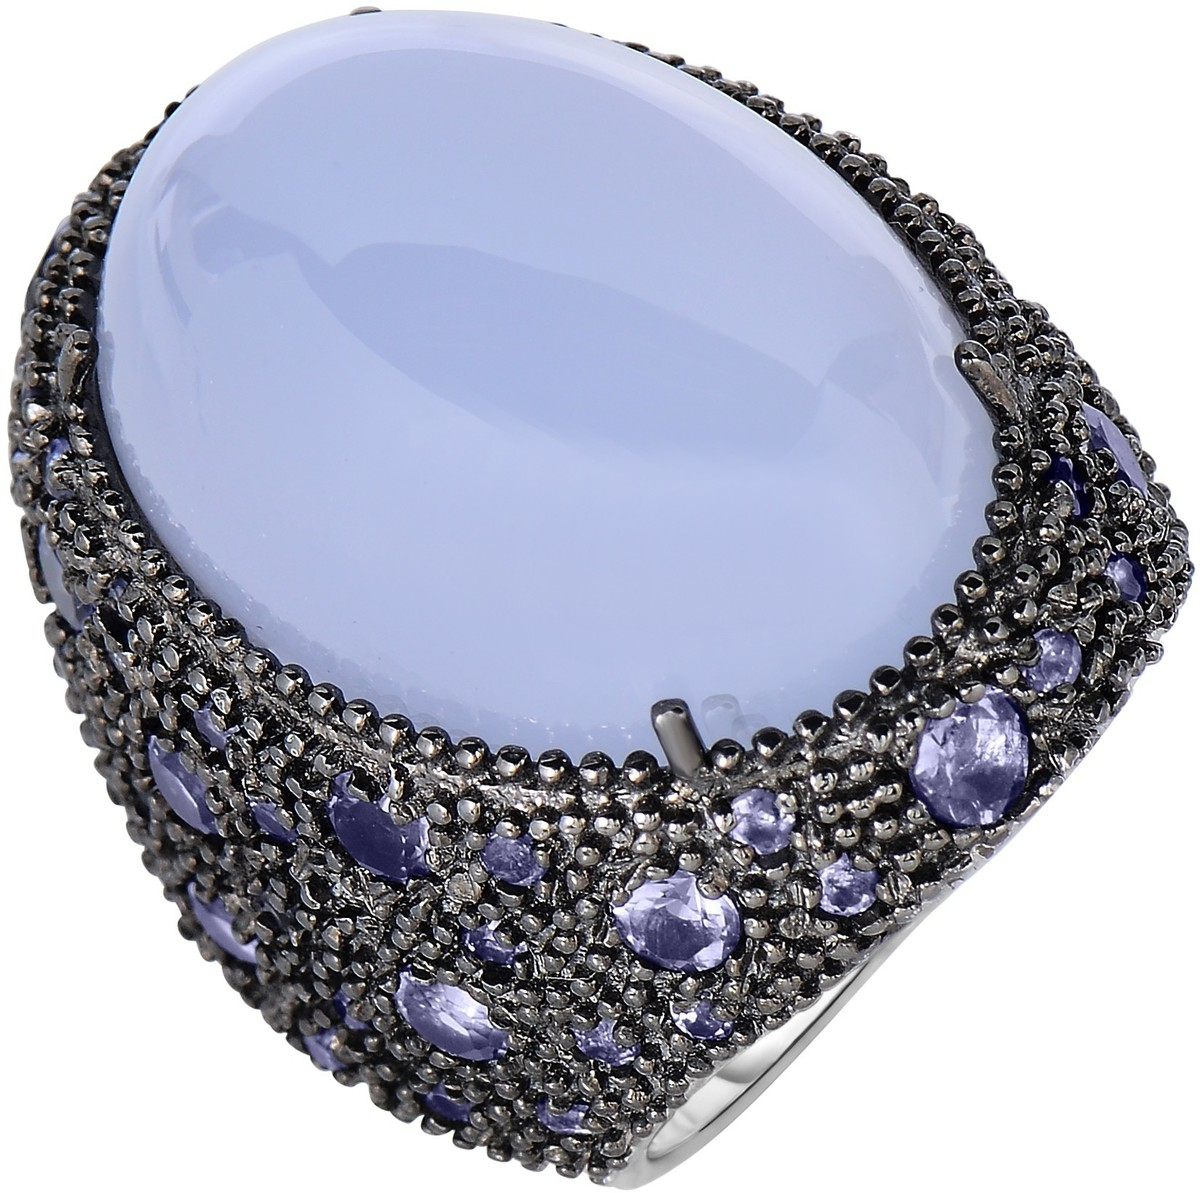 Phillip Gavriel - 30-5.5mm Rhodium Plated Sterling Silver Ring w/ 23.2x16.7mm Oval Cabochon 32ct. Blue Chalcedony - DISCONTINUED